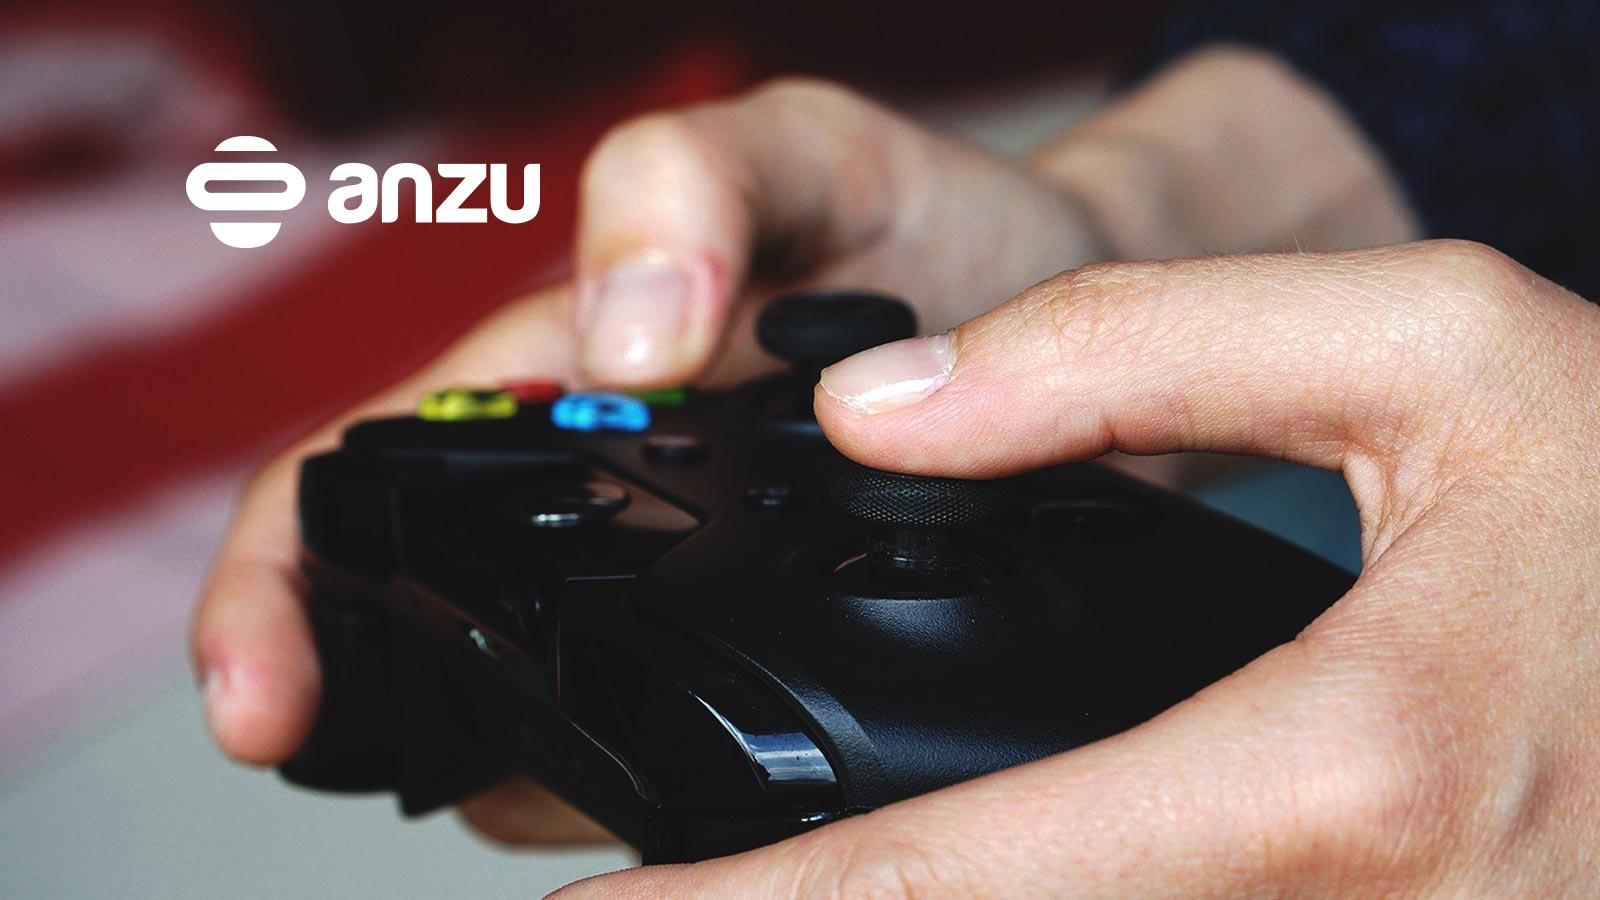 aMVG and Anzu Announce Partnership to Bring Blended In-Game Advertising to the Addressable Media 1